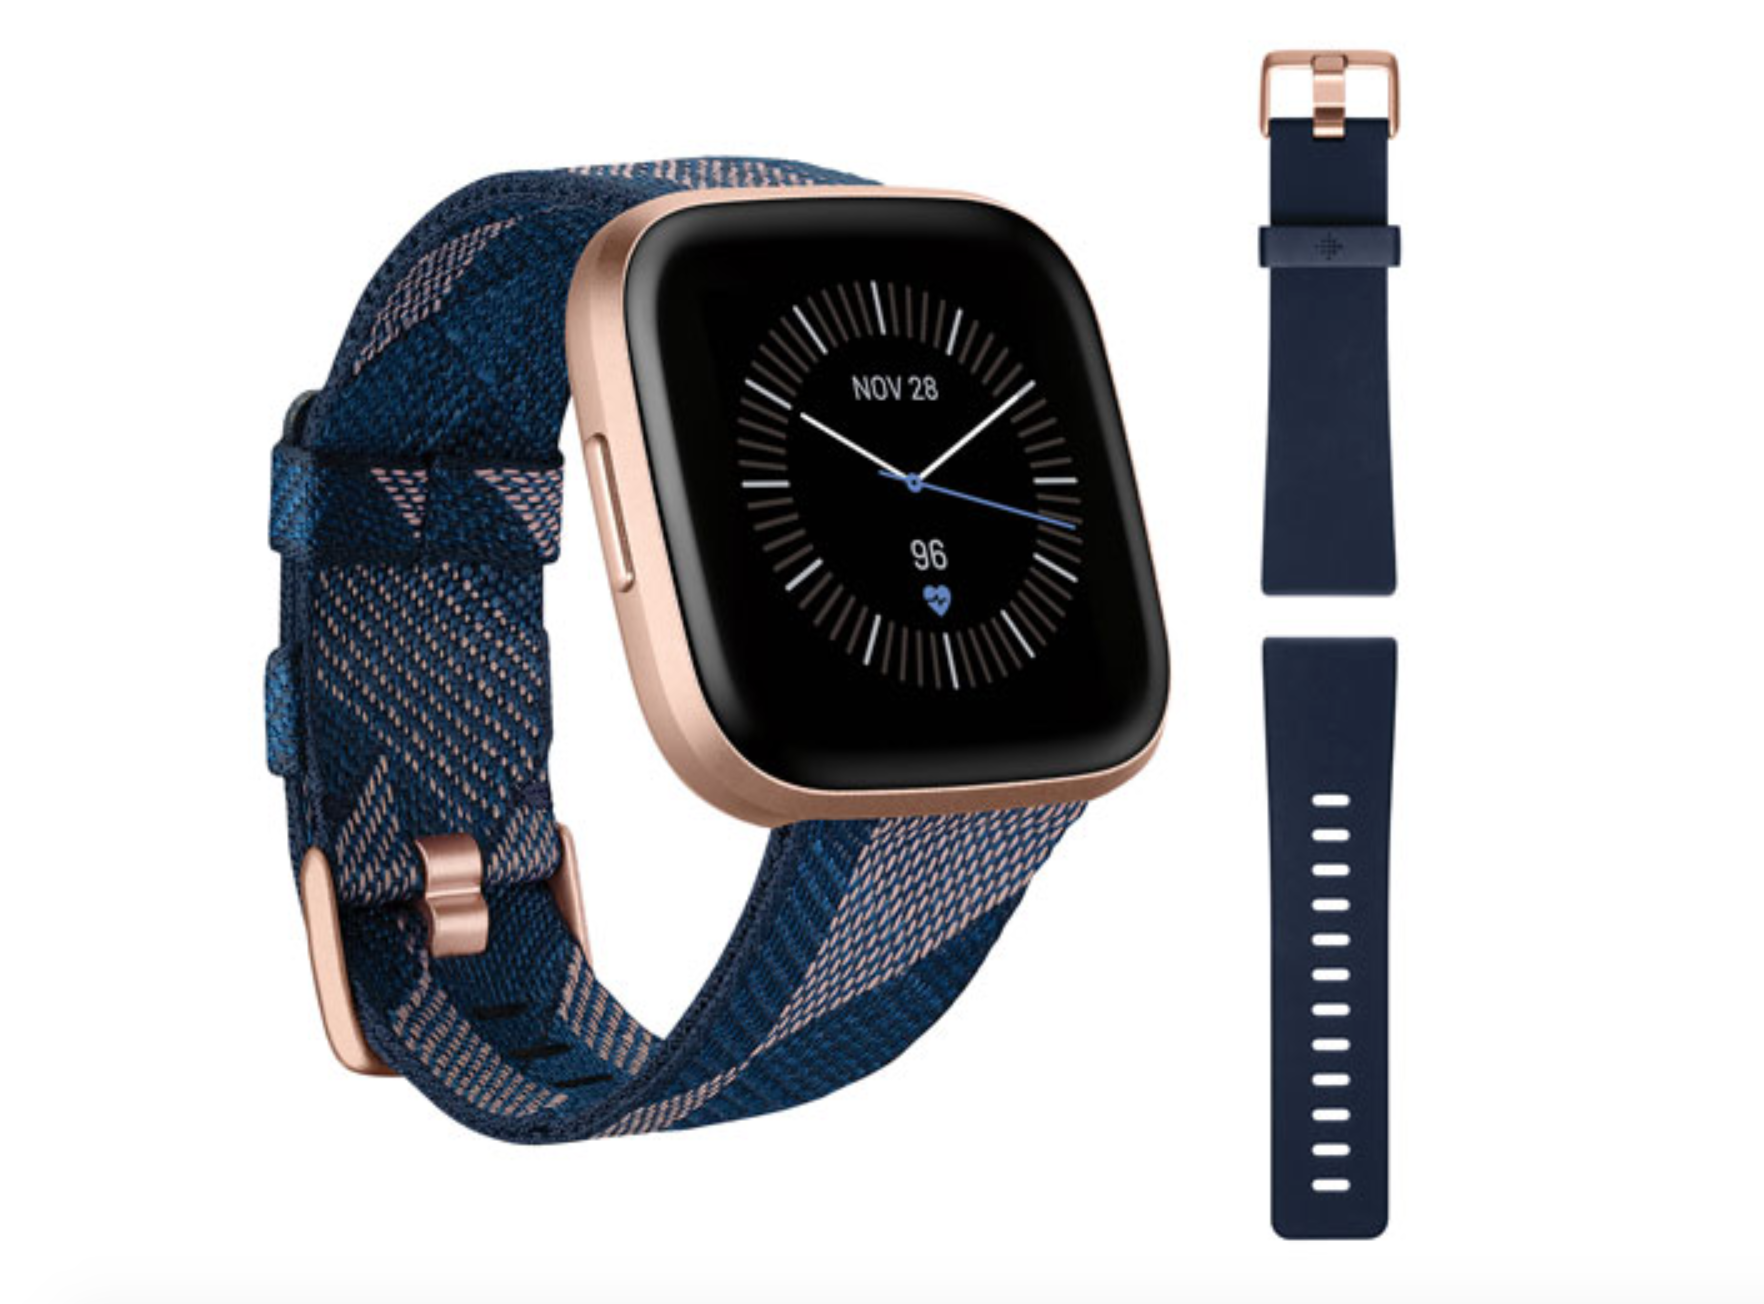 image of the Fitbit Versa 2 Special Edition smartwatch with additional wrist strap